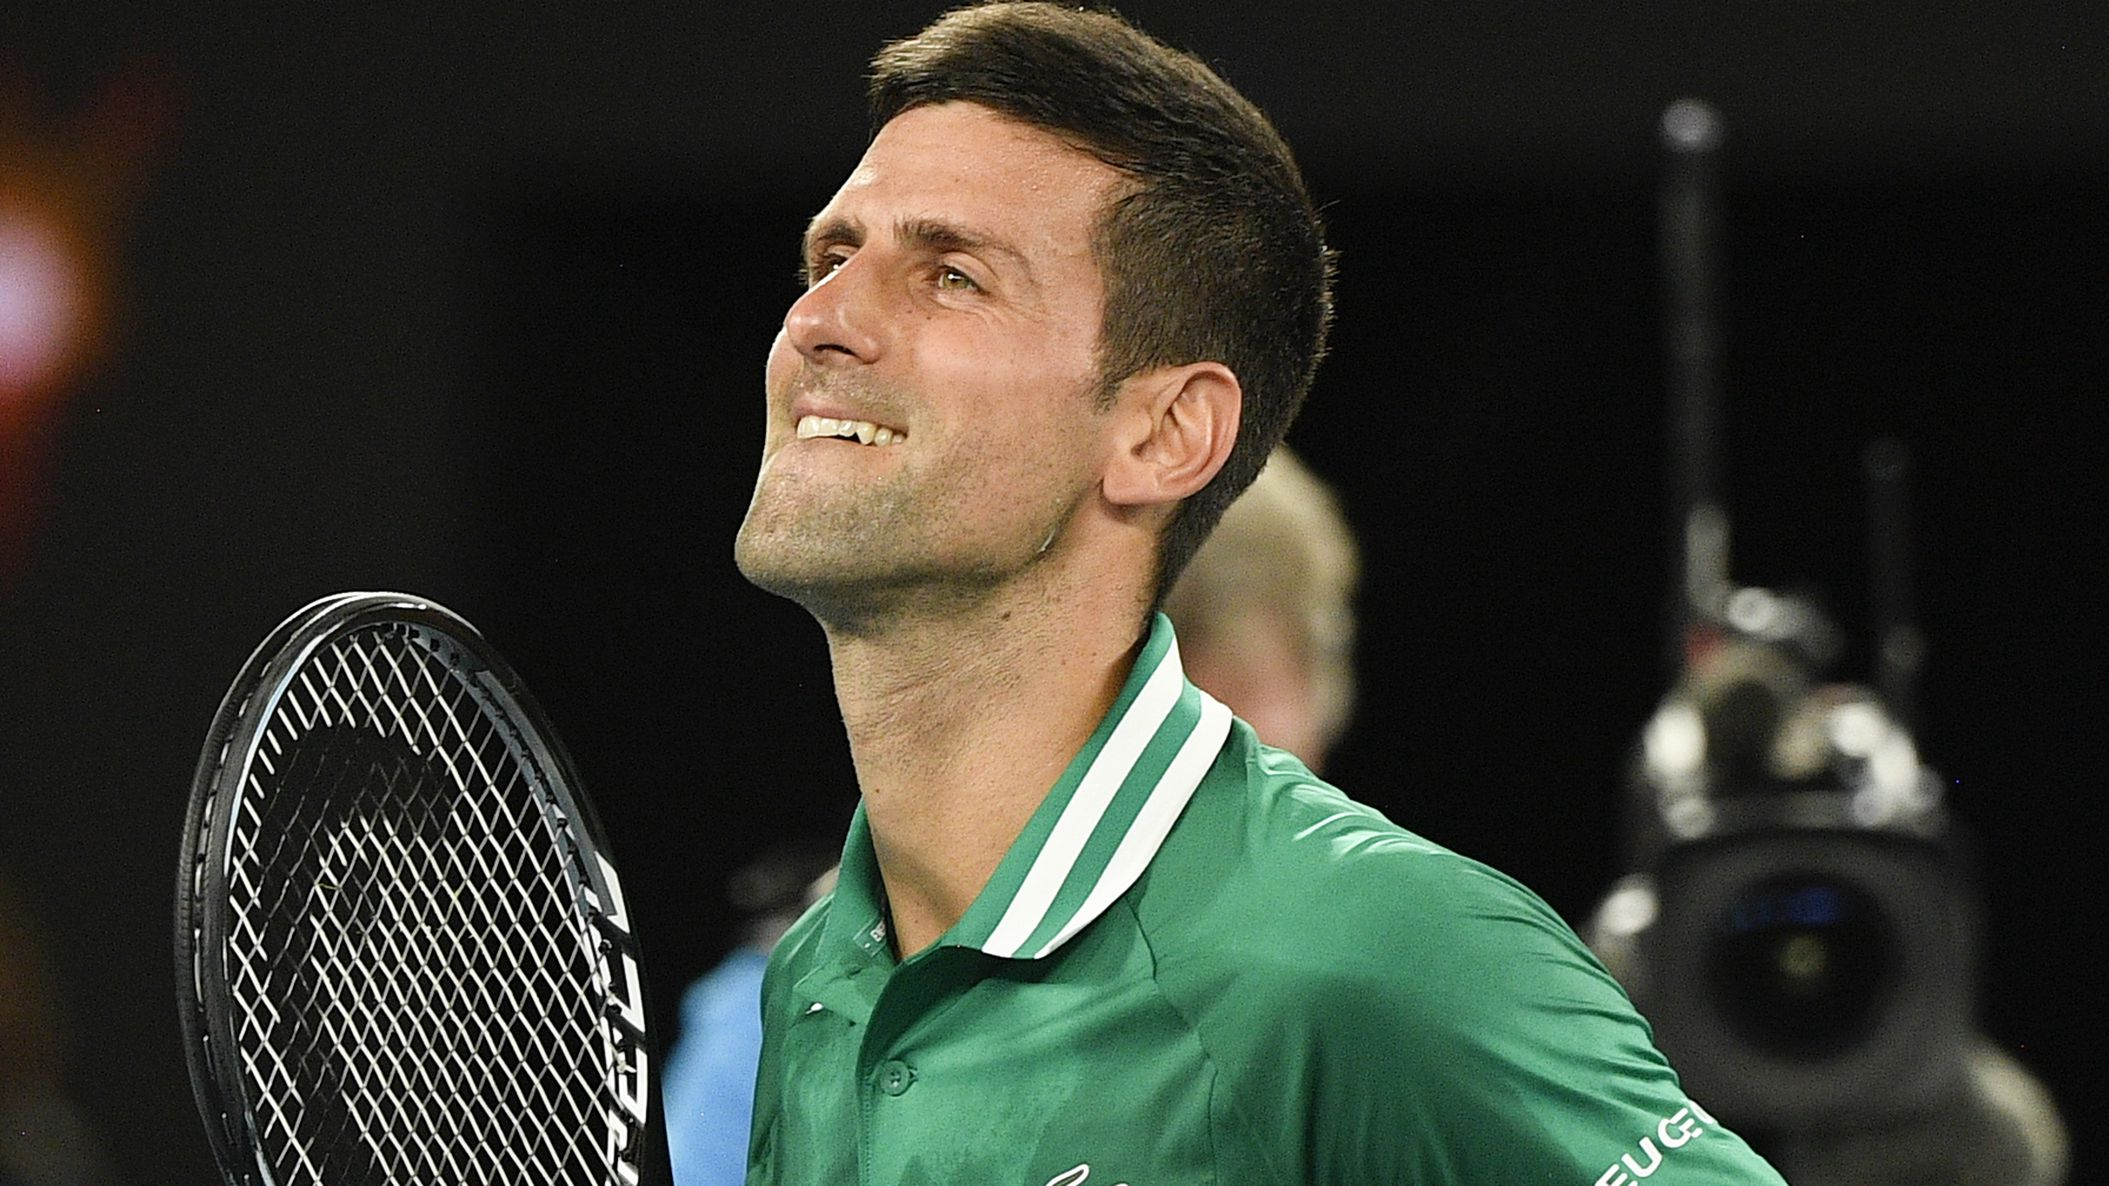 EXCLUSIVE: Australian great says Novak Djokovic has been 'hard done by' in Melbourne